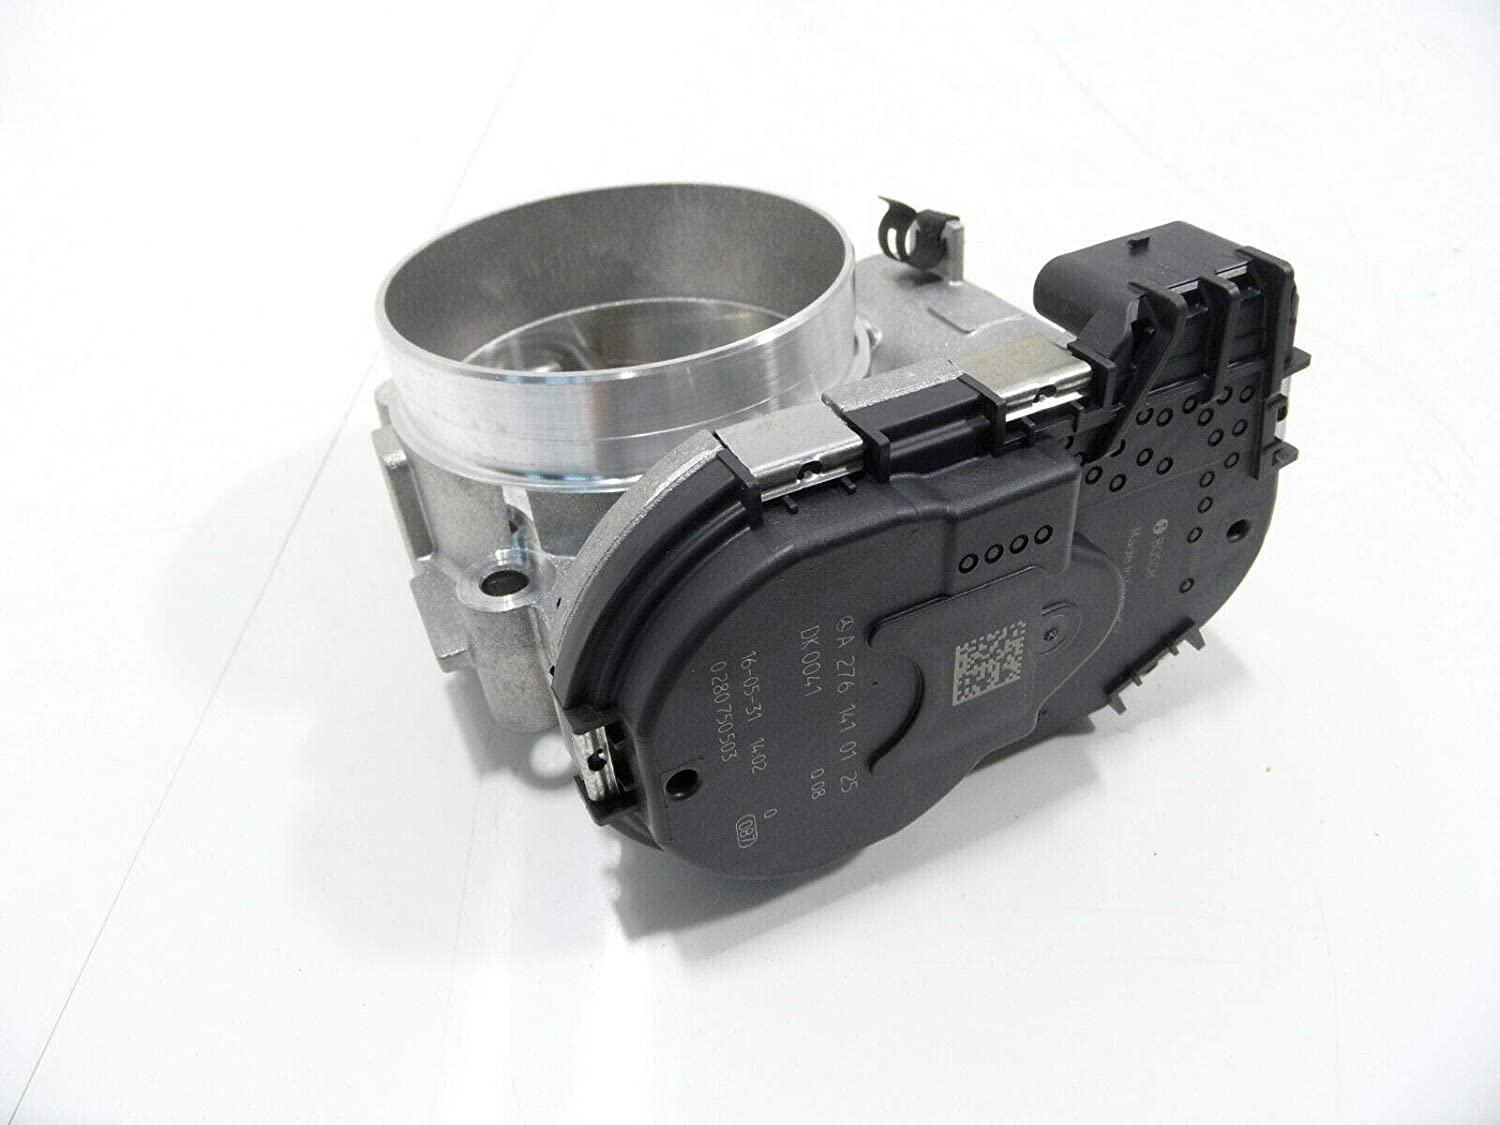 yise-B0246 New Engine Airflow Controlling Fuel Injection A2761410125 0280750503 2761410125 A2761410125 Throttle Body for Mercedes-Benz